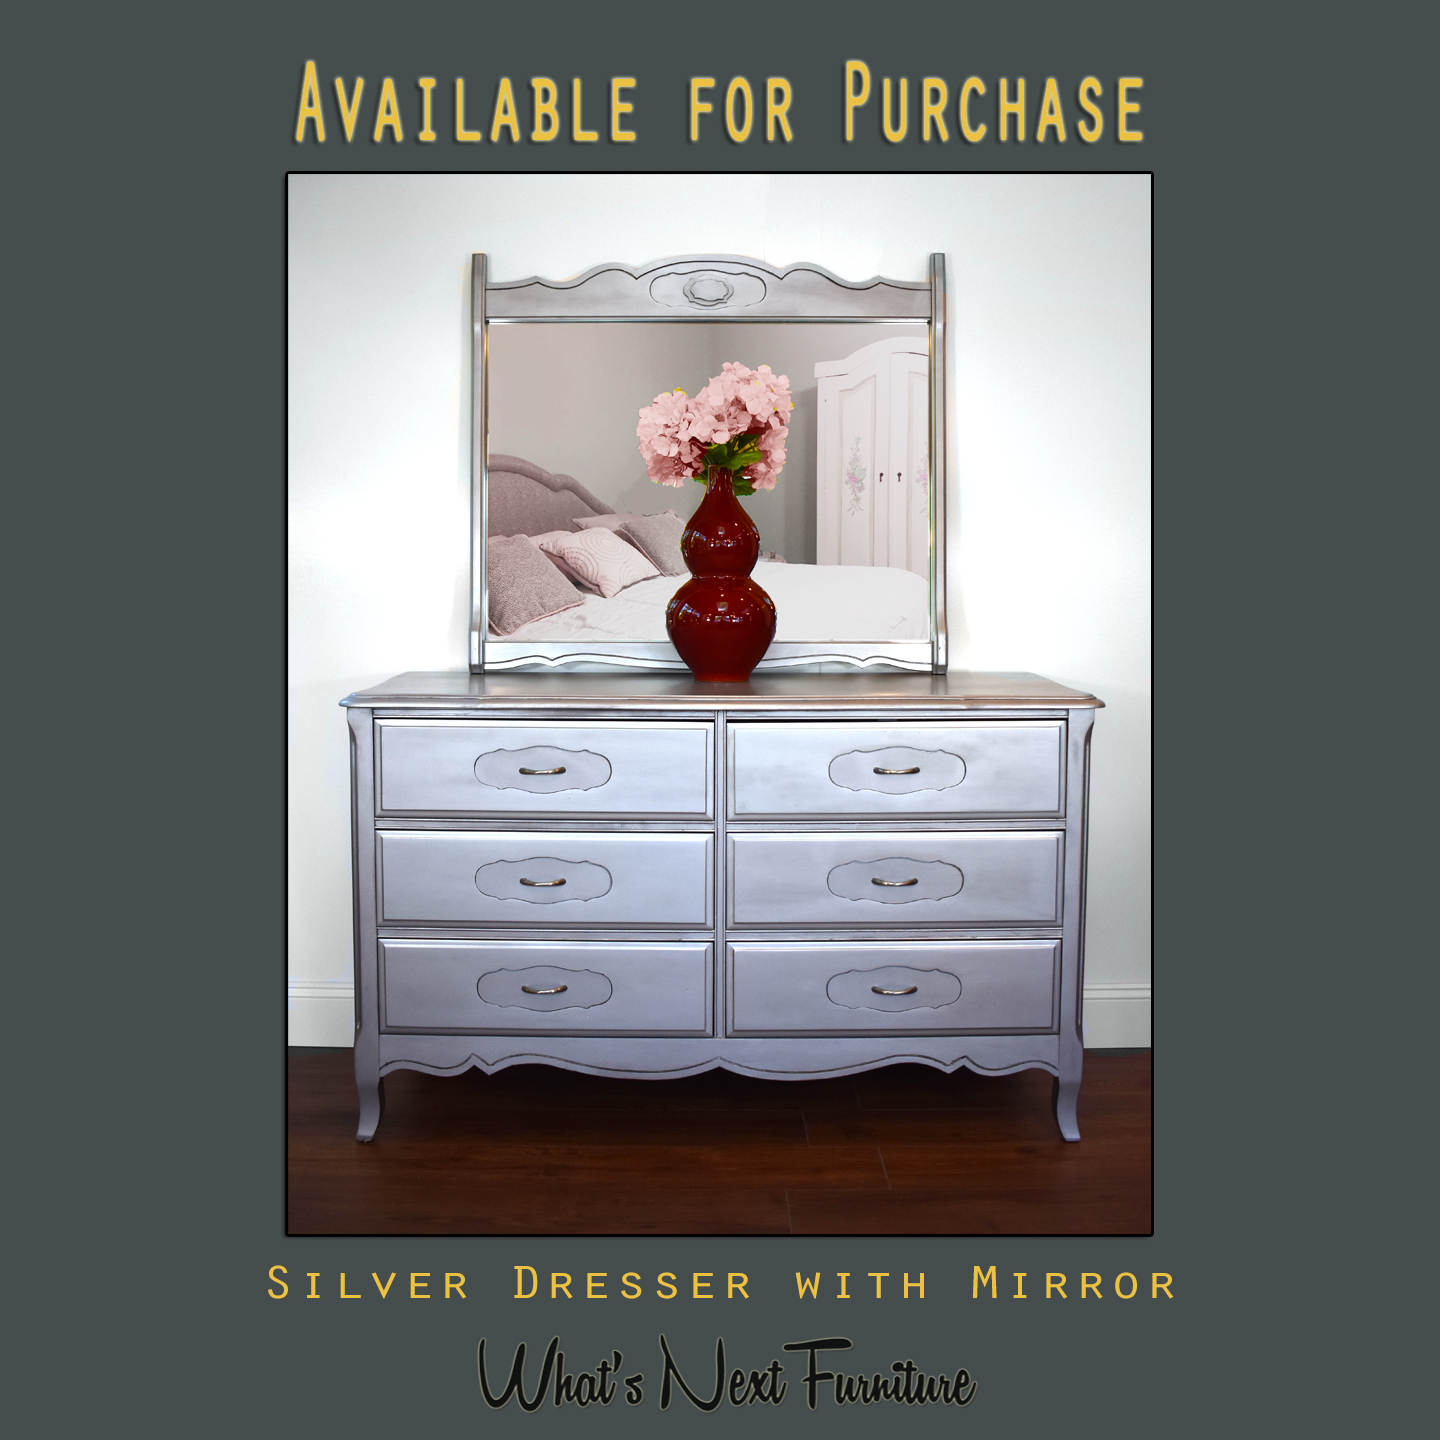 Silver Dresser available square grey.jpg